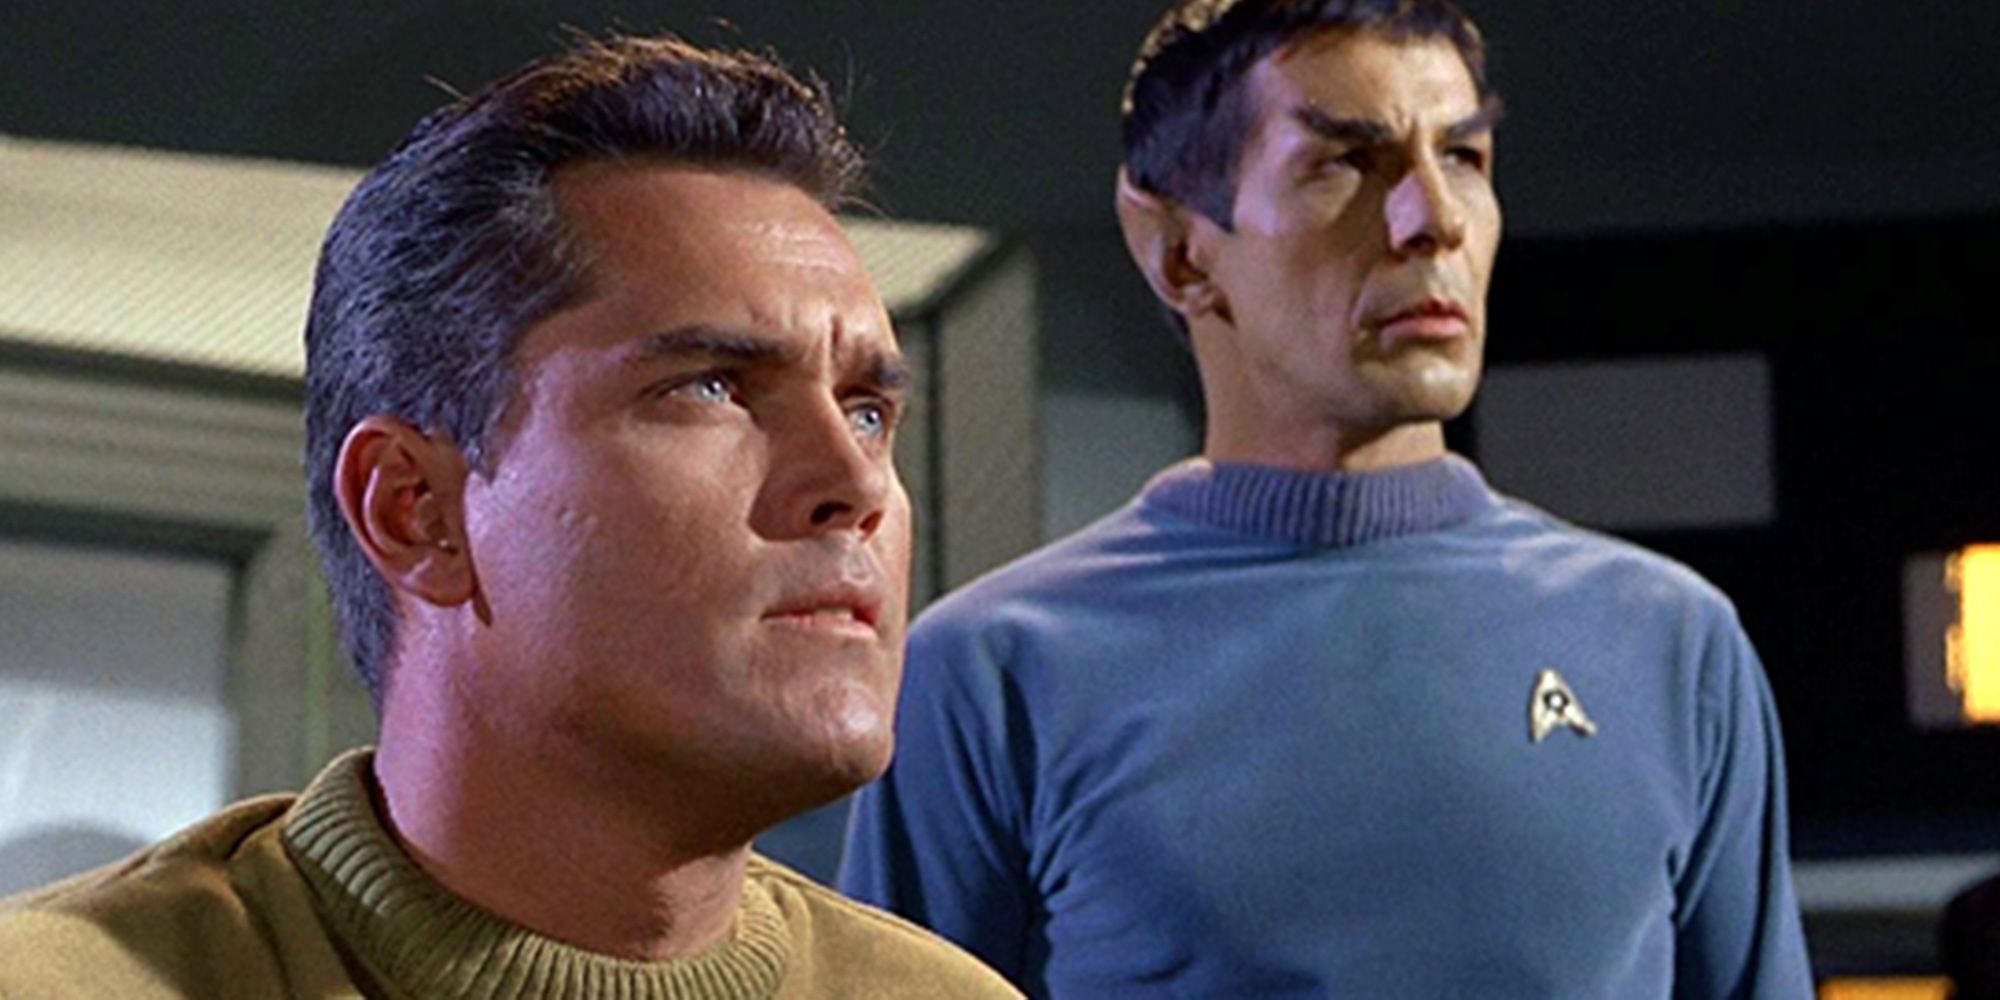 Star Trek: Why Captain Kirk Replaced Captain Pike | CBR